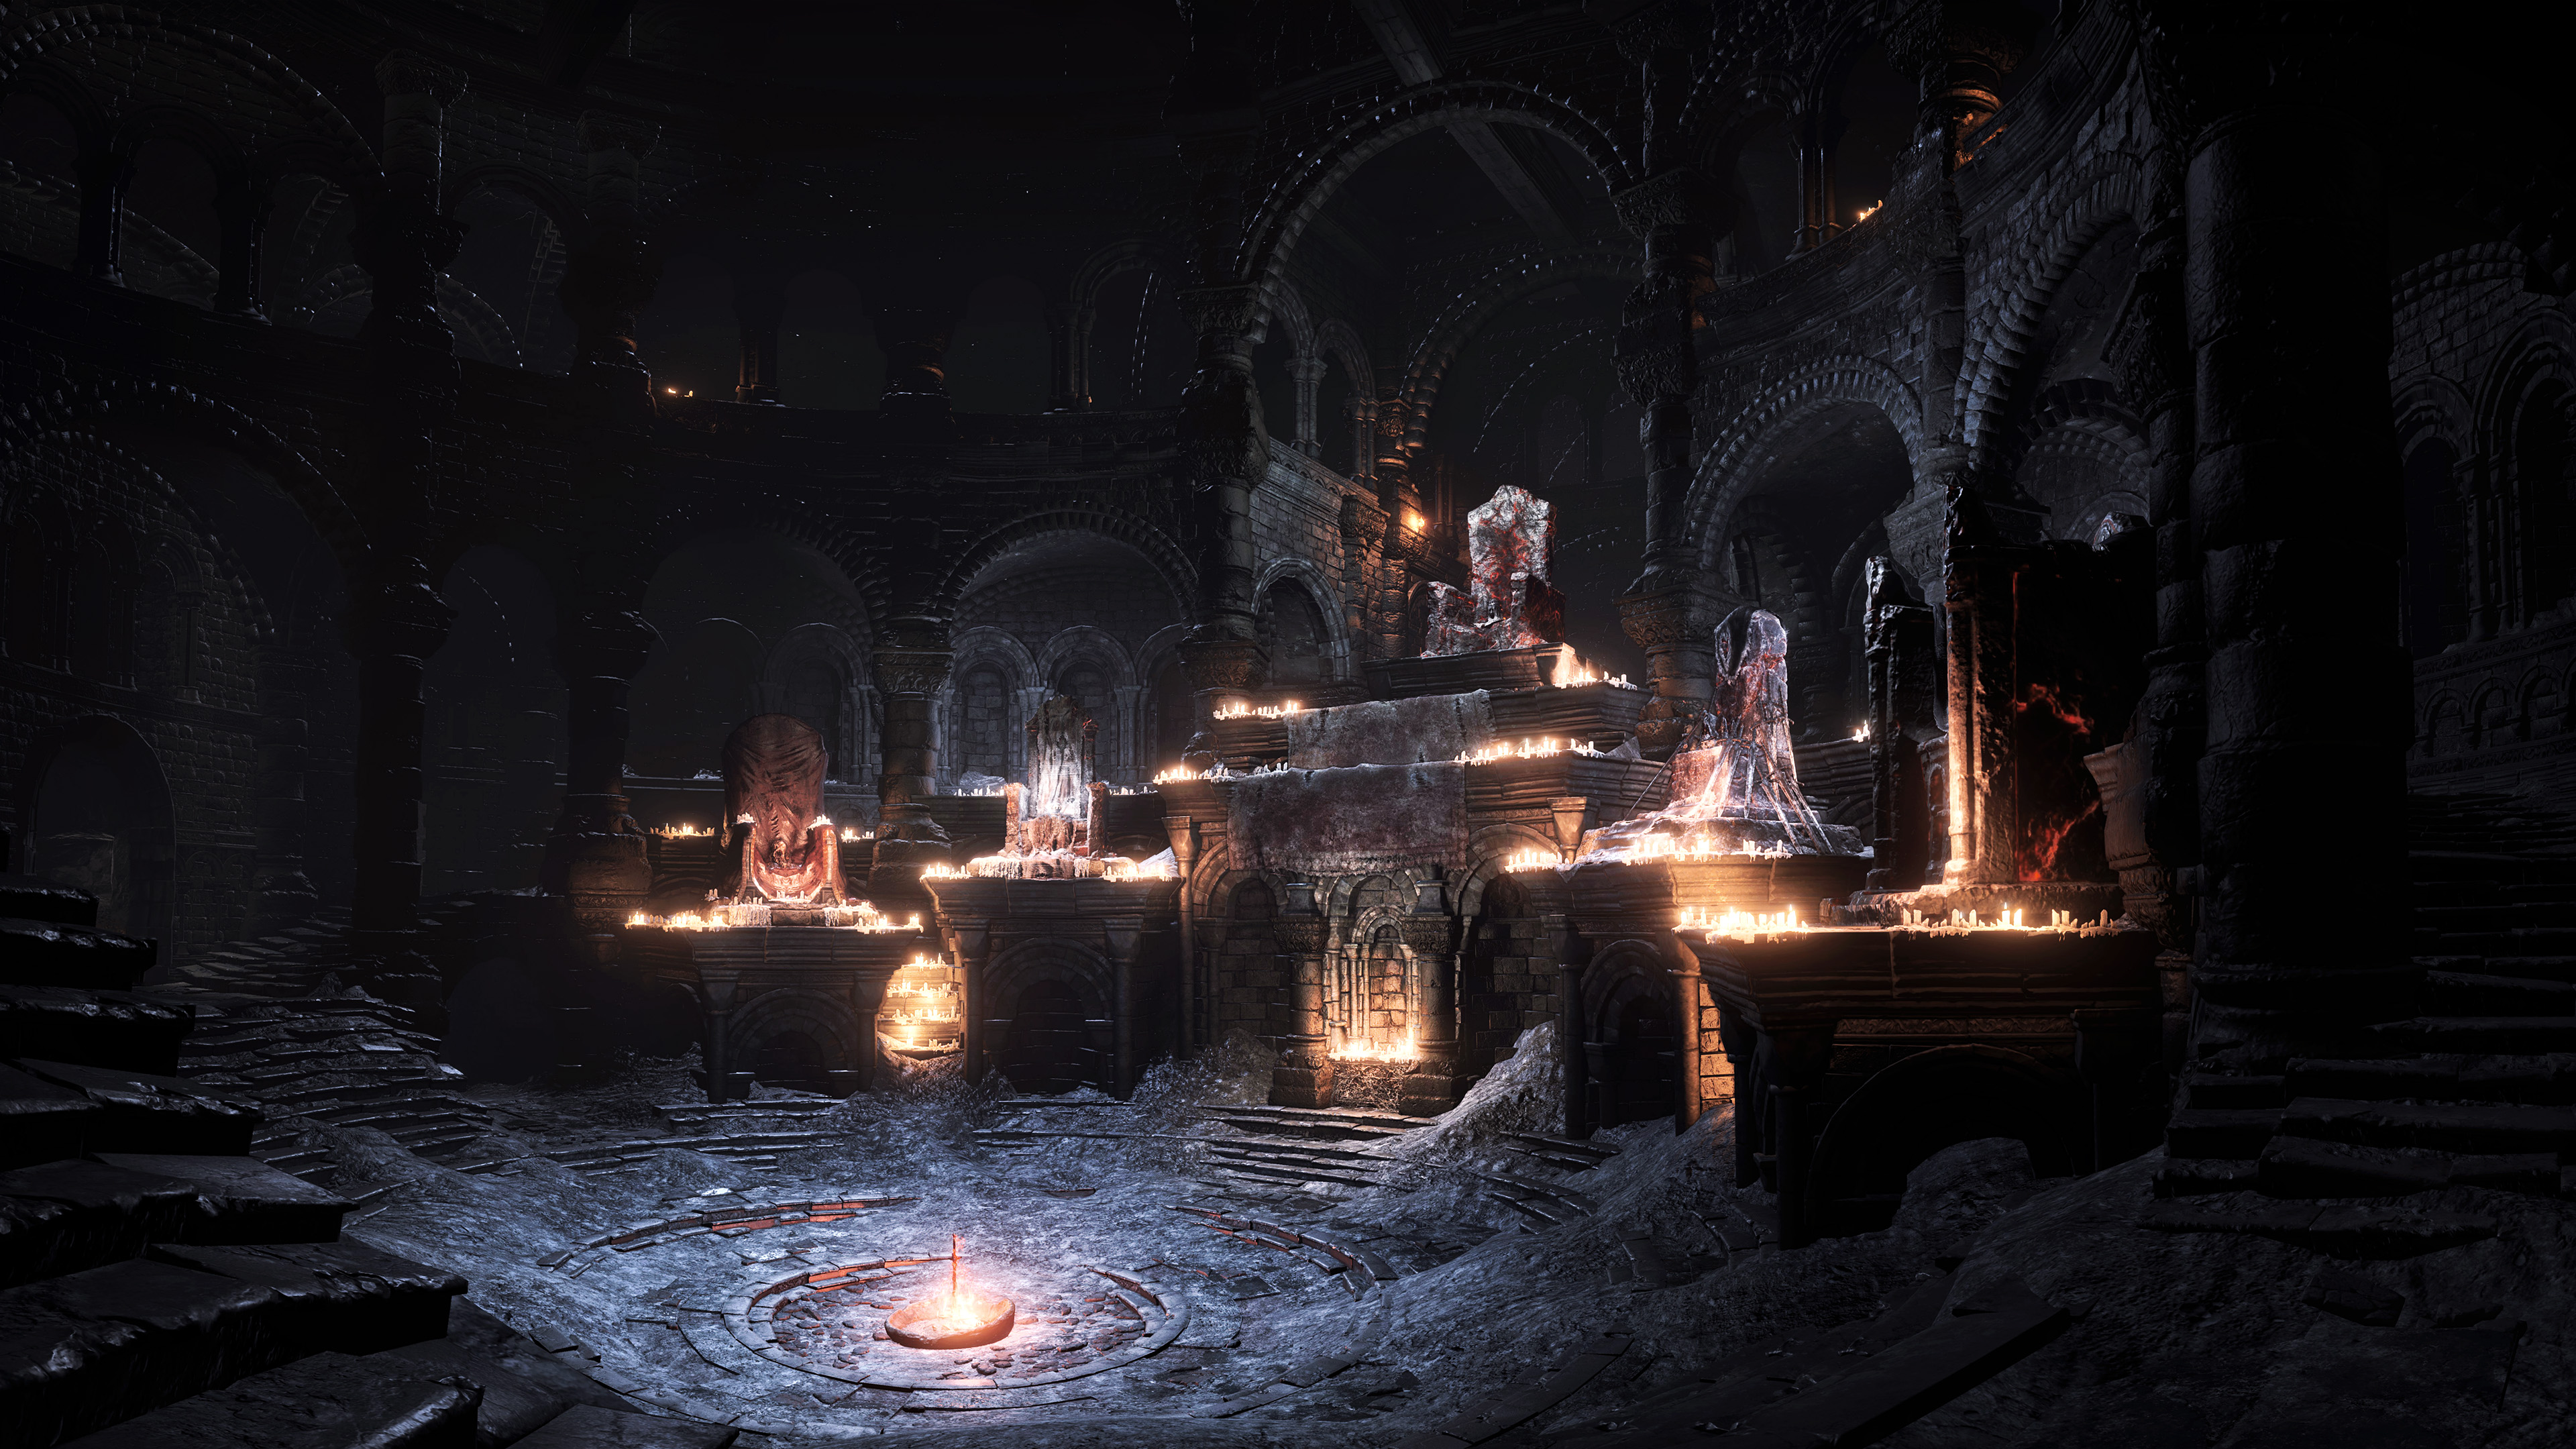 Firelink Shrine Dark Souls Iii Dark Souls Wiki Fandom The first step toward drawing heavier bows is to know exactly how much weight you're handling at full draw. firelink shrine dark souls iii dark